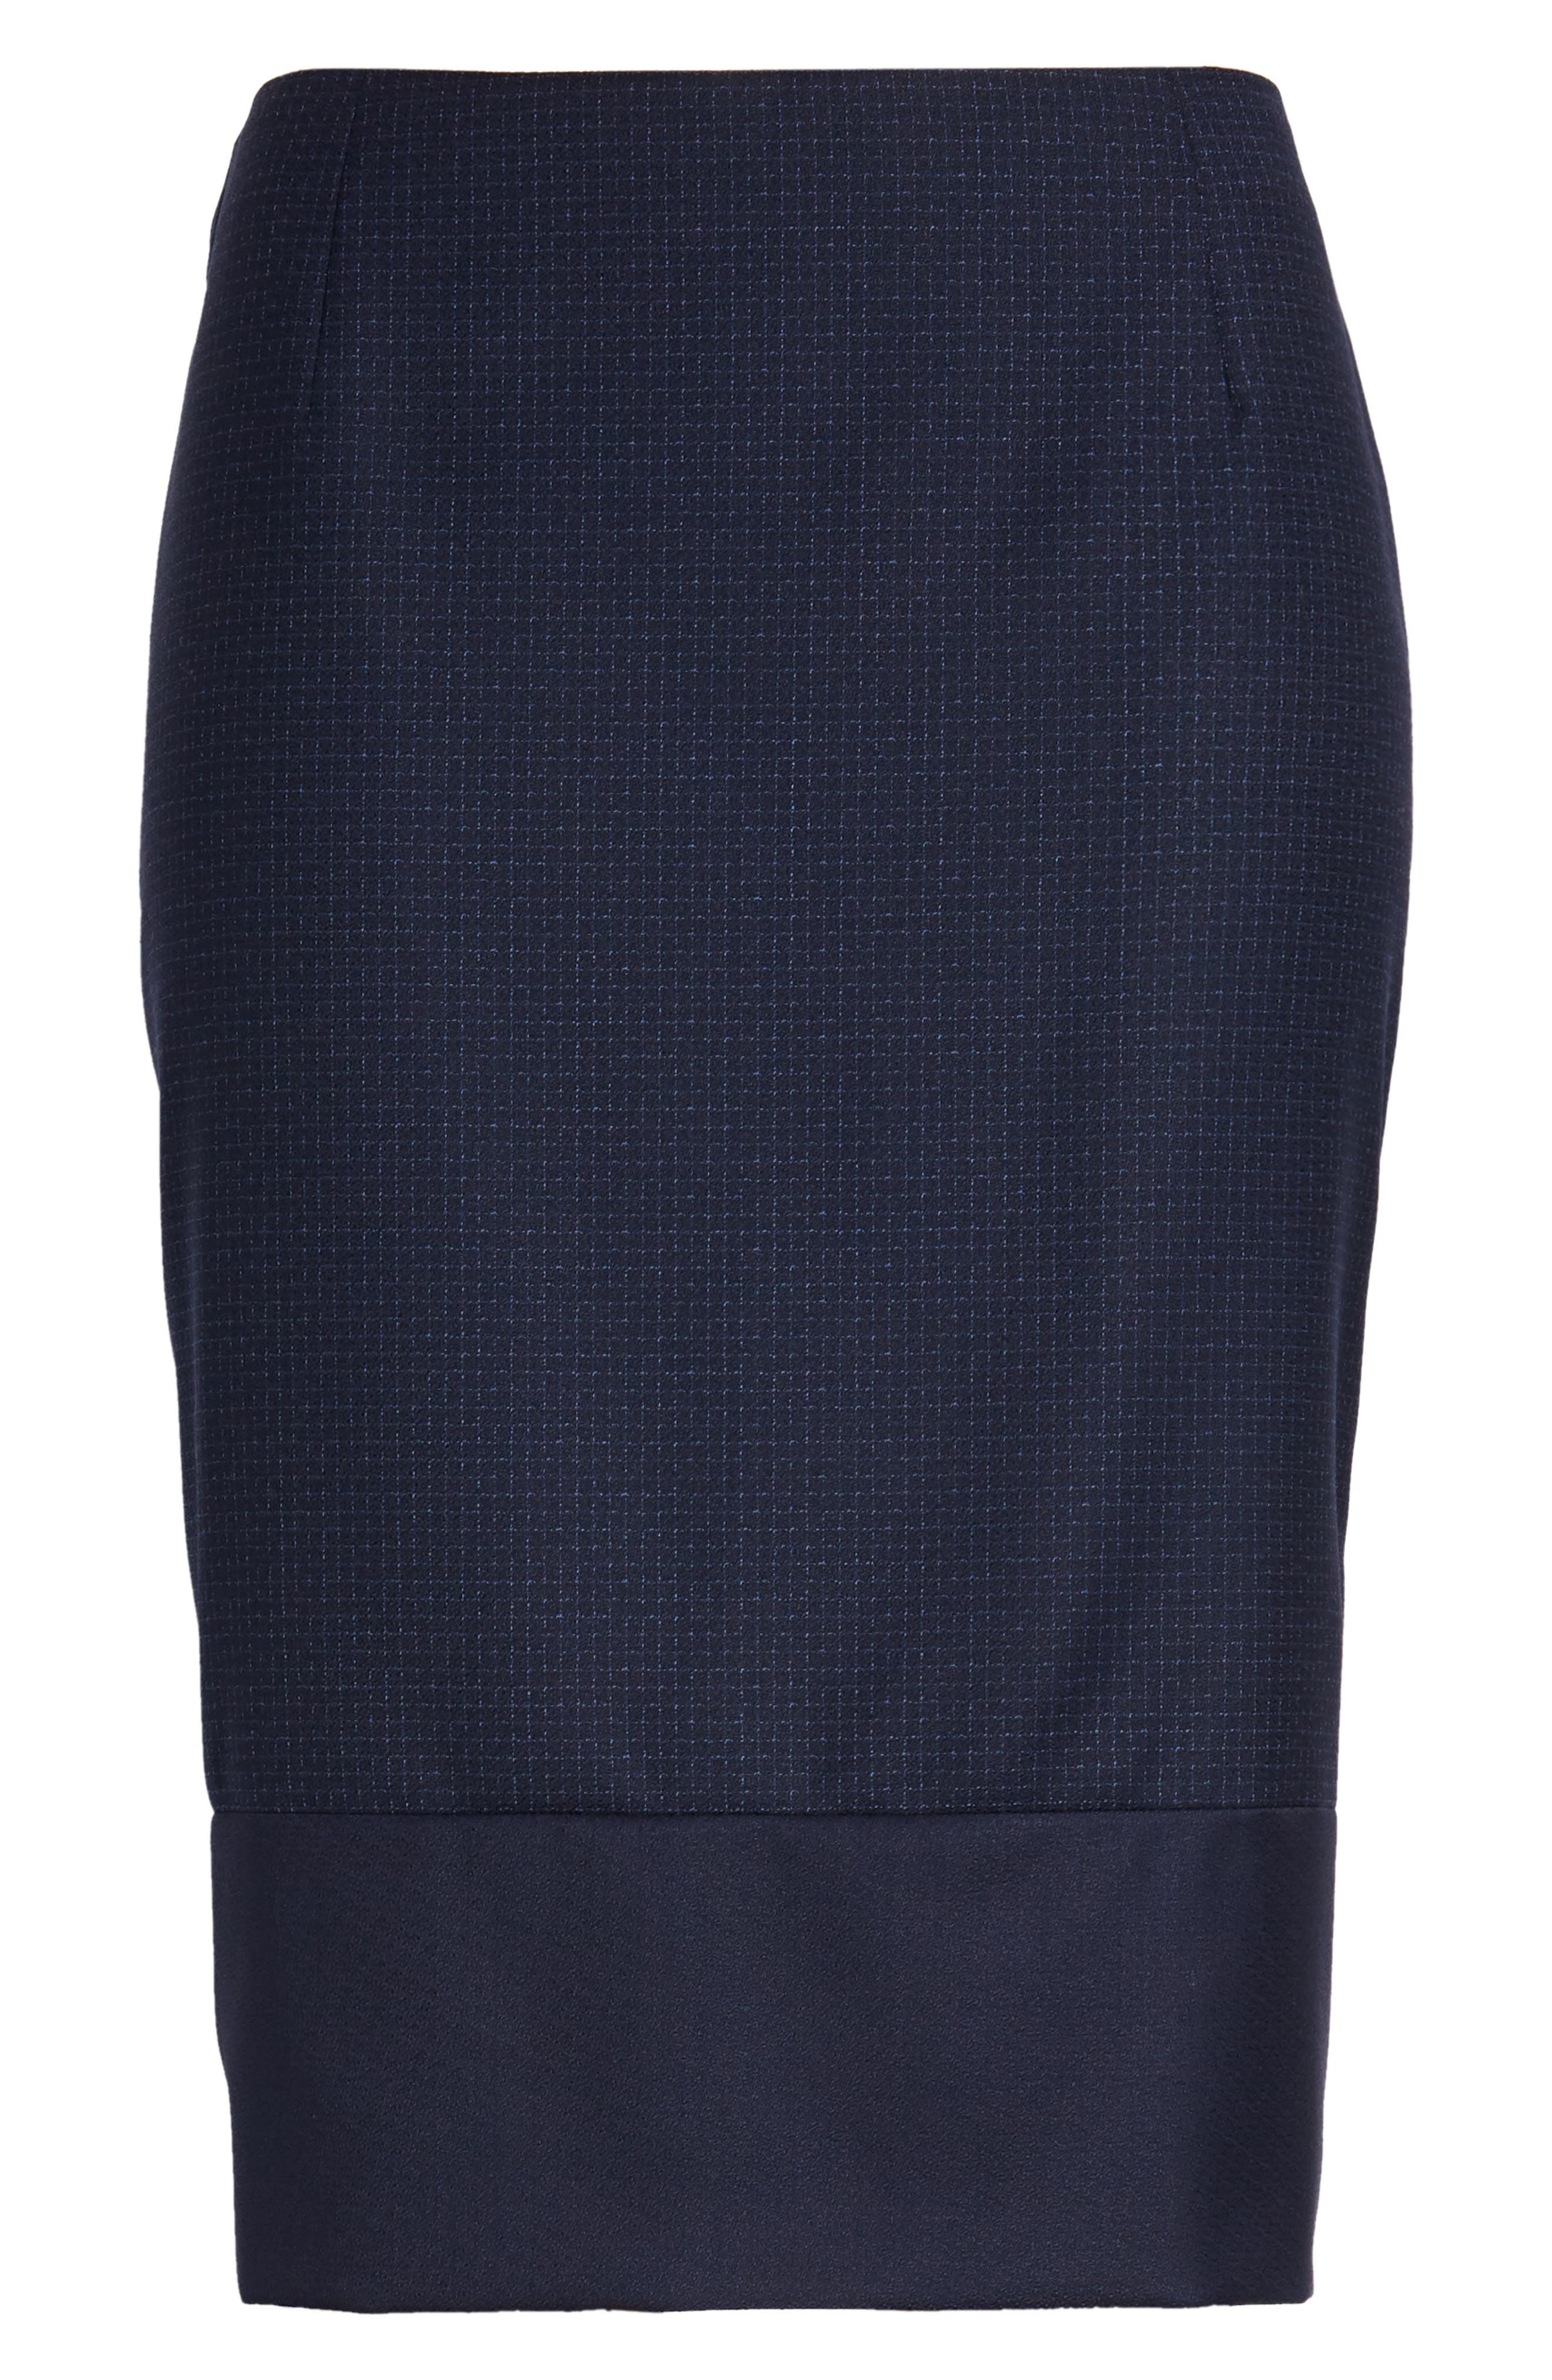 Vibena Windowpane Skirt,                             Alternate thumbnail 6, color,                             462